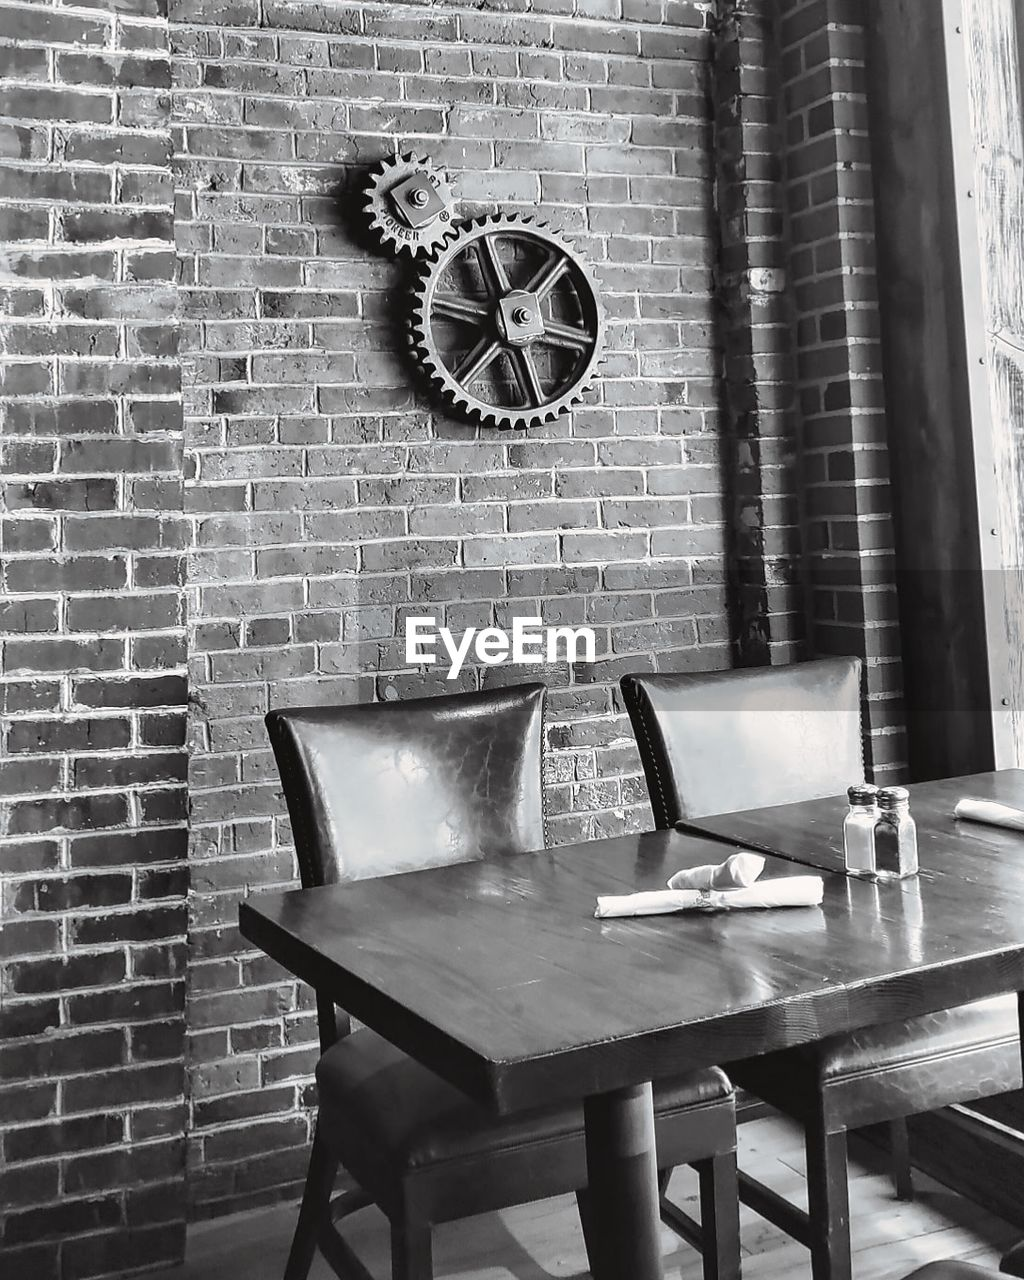 table, brick, brick wall, wall - building feature, wall, no people, absence, indoors, clock, chair, seat, empty, time, business, still life, nature, architecture, day, arrangement, restaurant, electric lamp, clock face